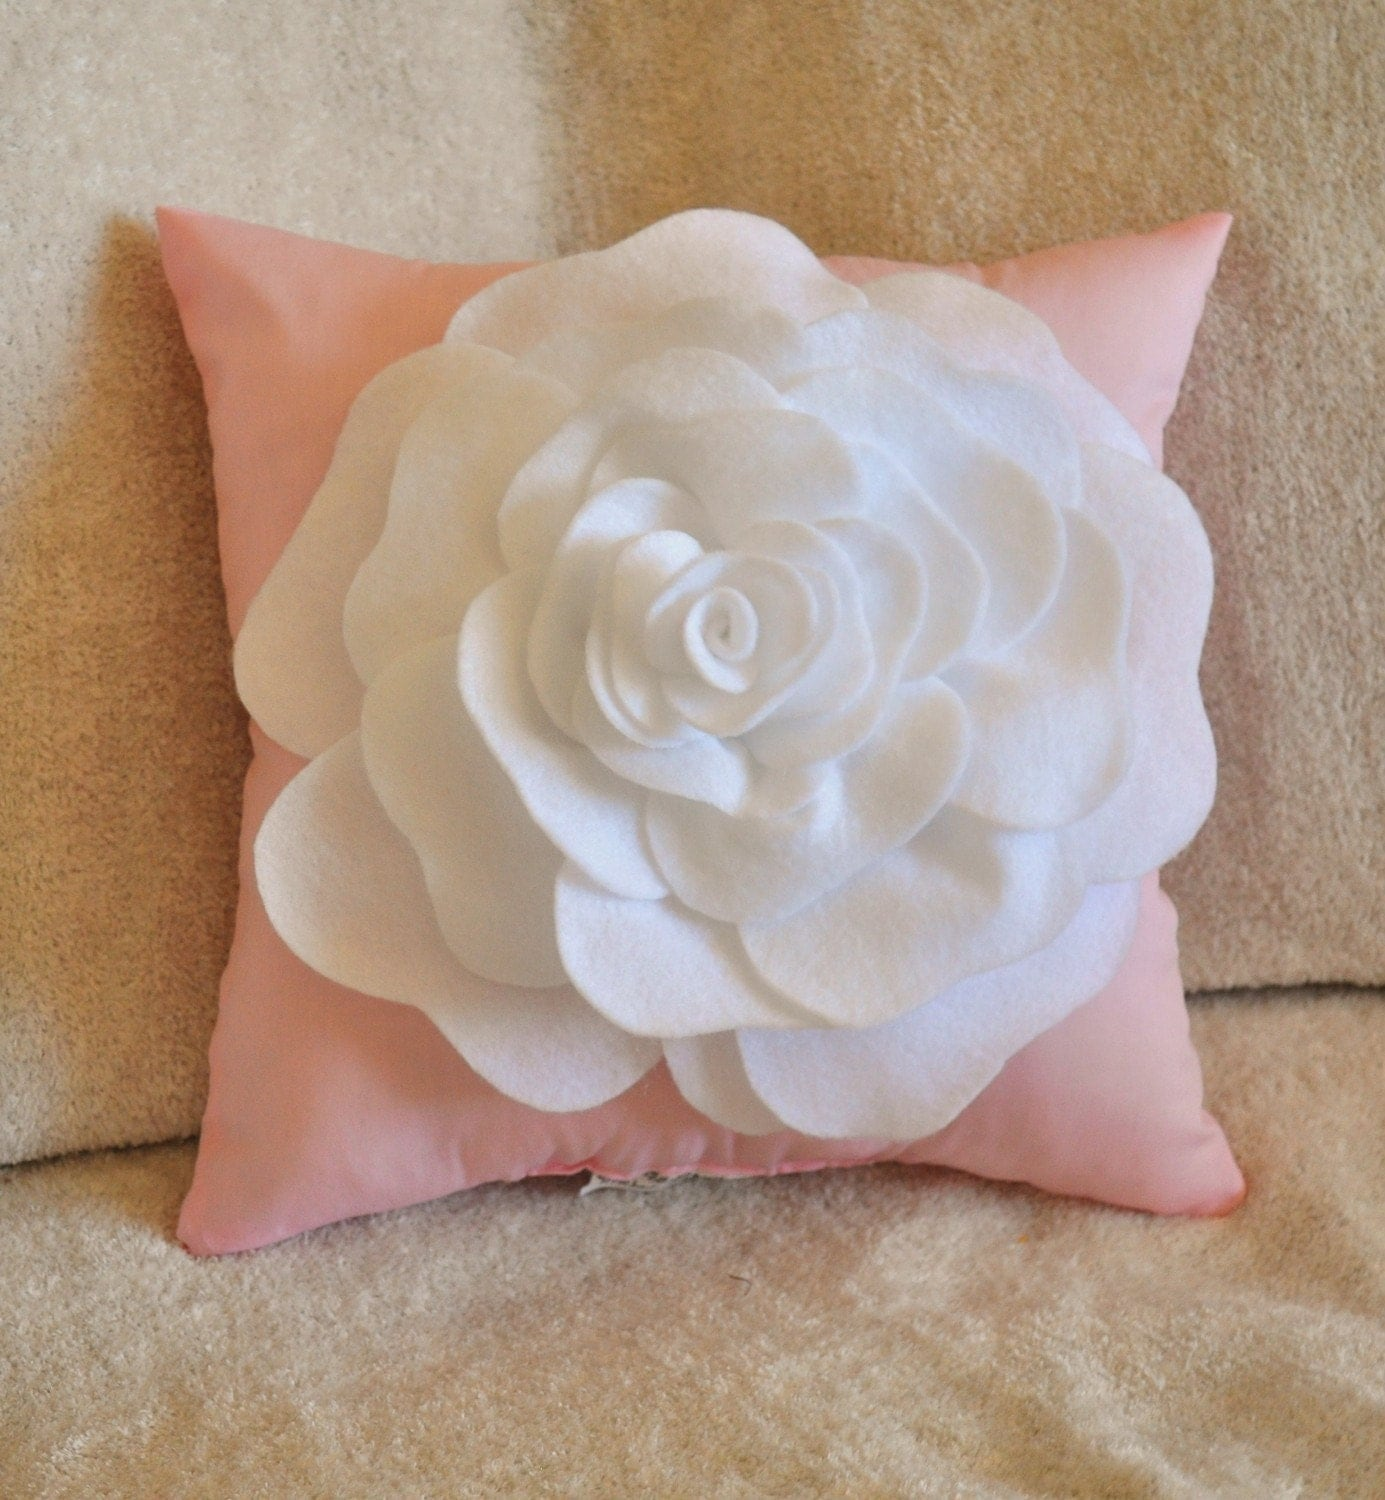 throw pillow white rose on light pink pillow 12x12. Black Bedroom Furniture Sets. Home Design Ideas